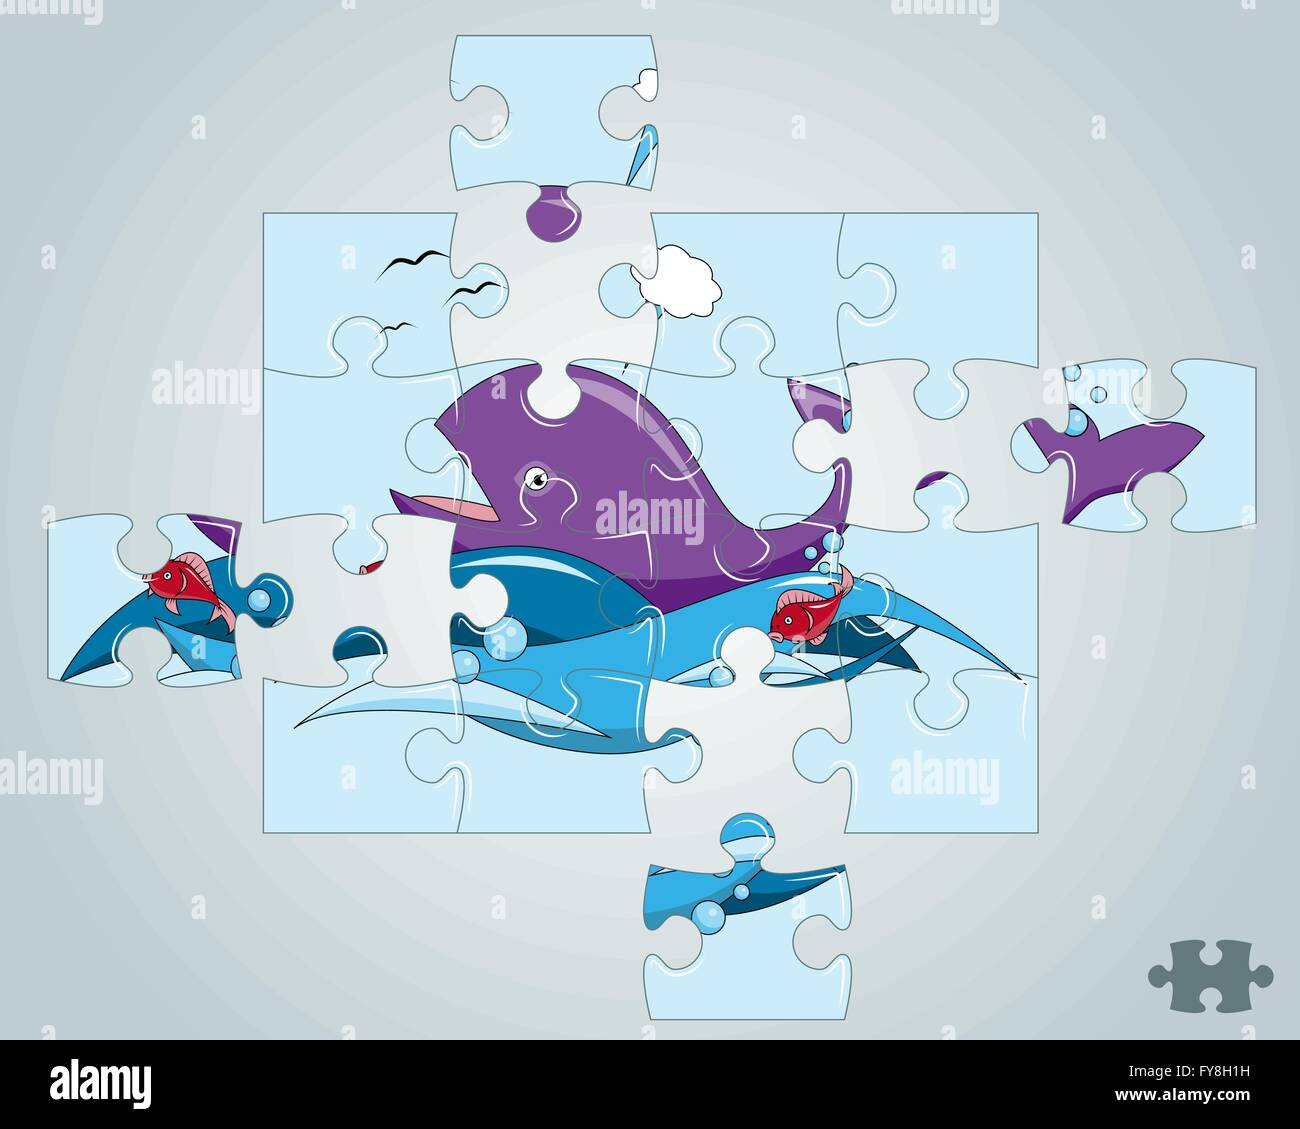 Puzzle fish on the waves in the ocean vector illustration - Stock Vector